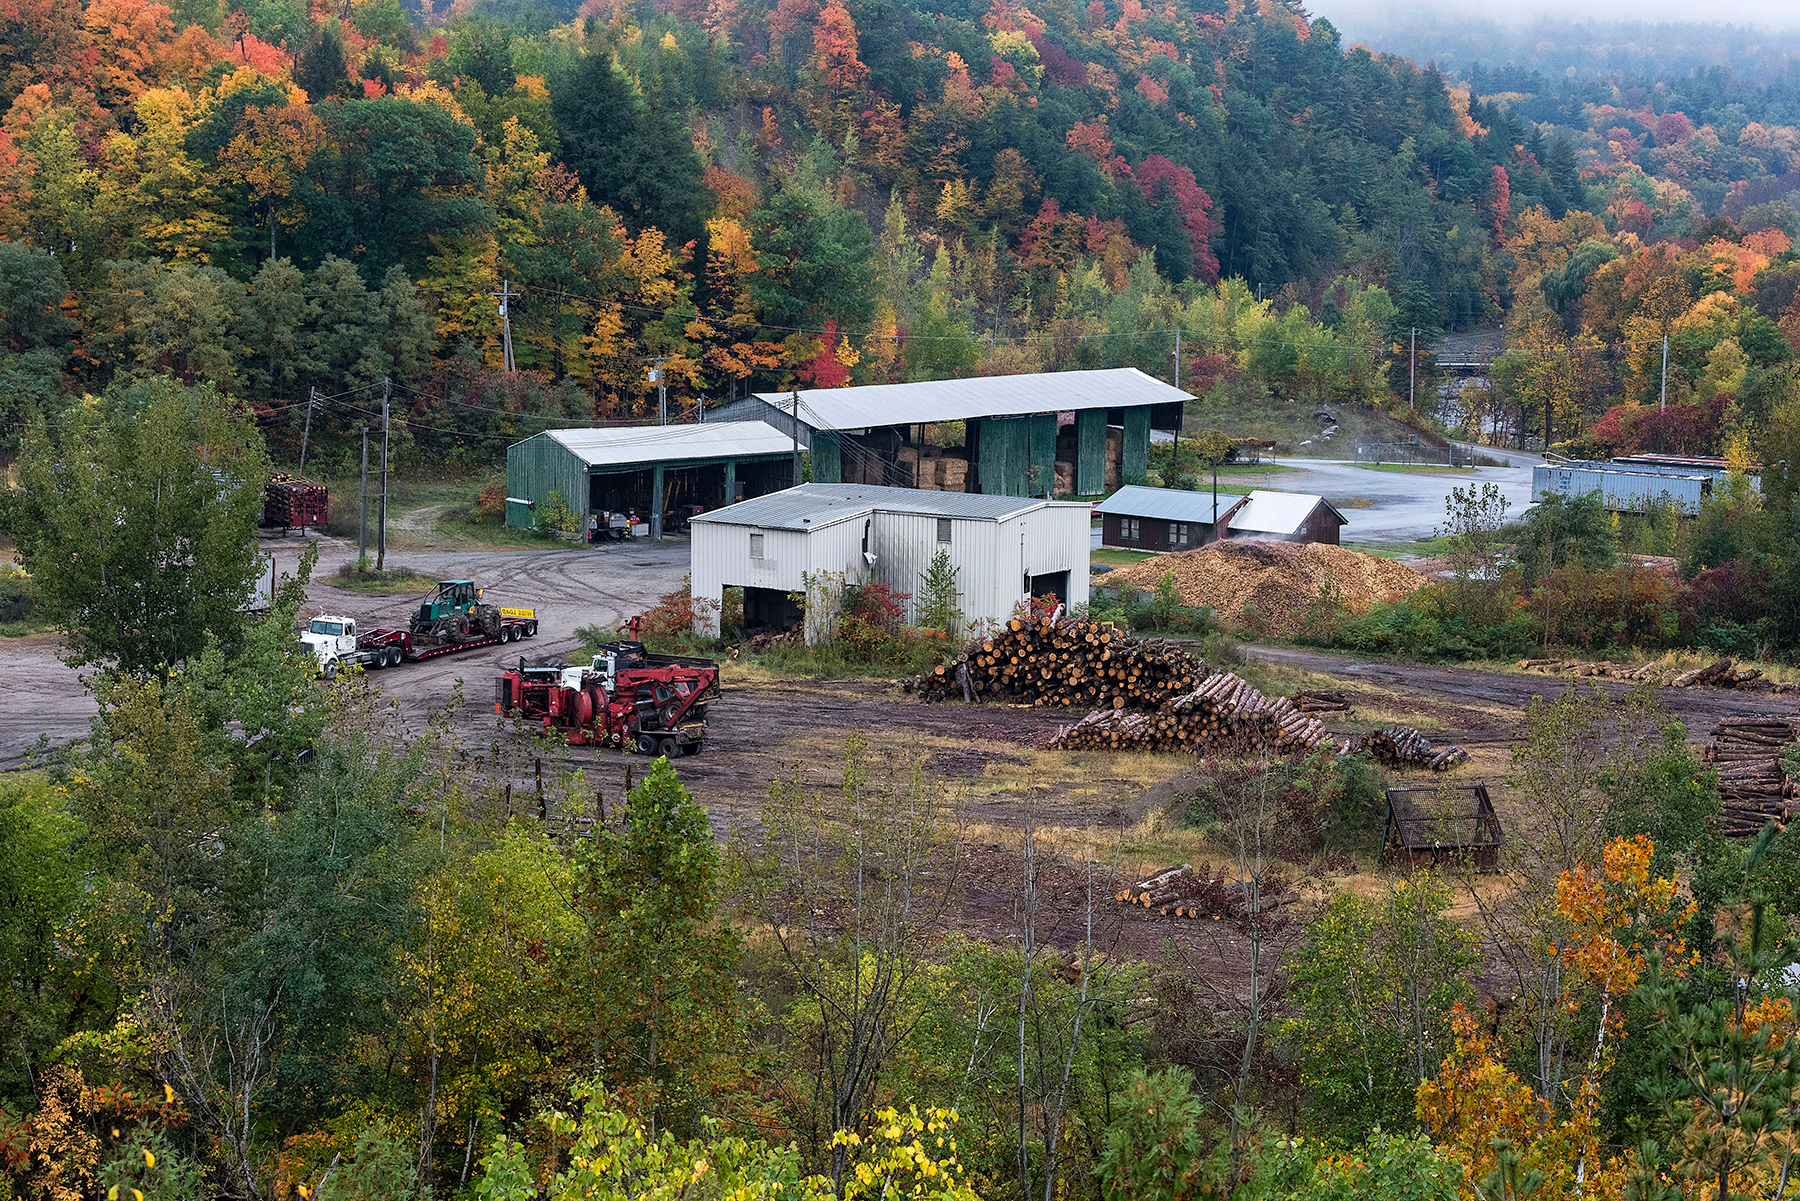 BRISTOL, VERMONT, UNITED STATES - 2018/10/15: Logging industry facility. (Photo by John Greim/LightRocket via Getty Images)